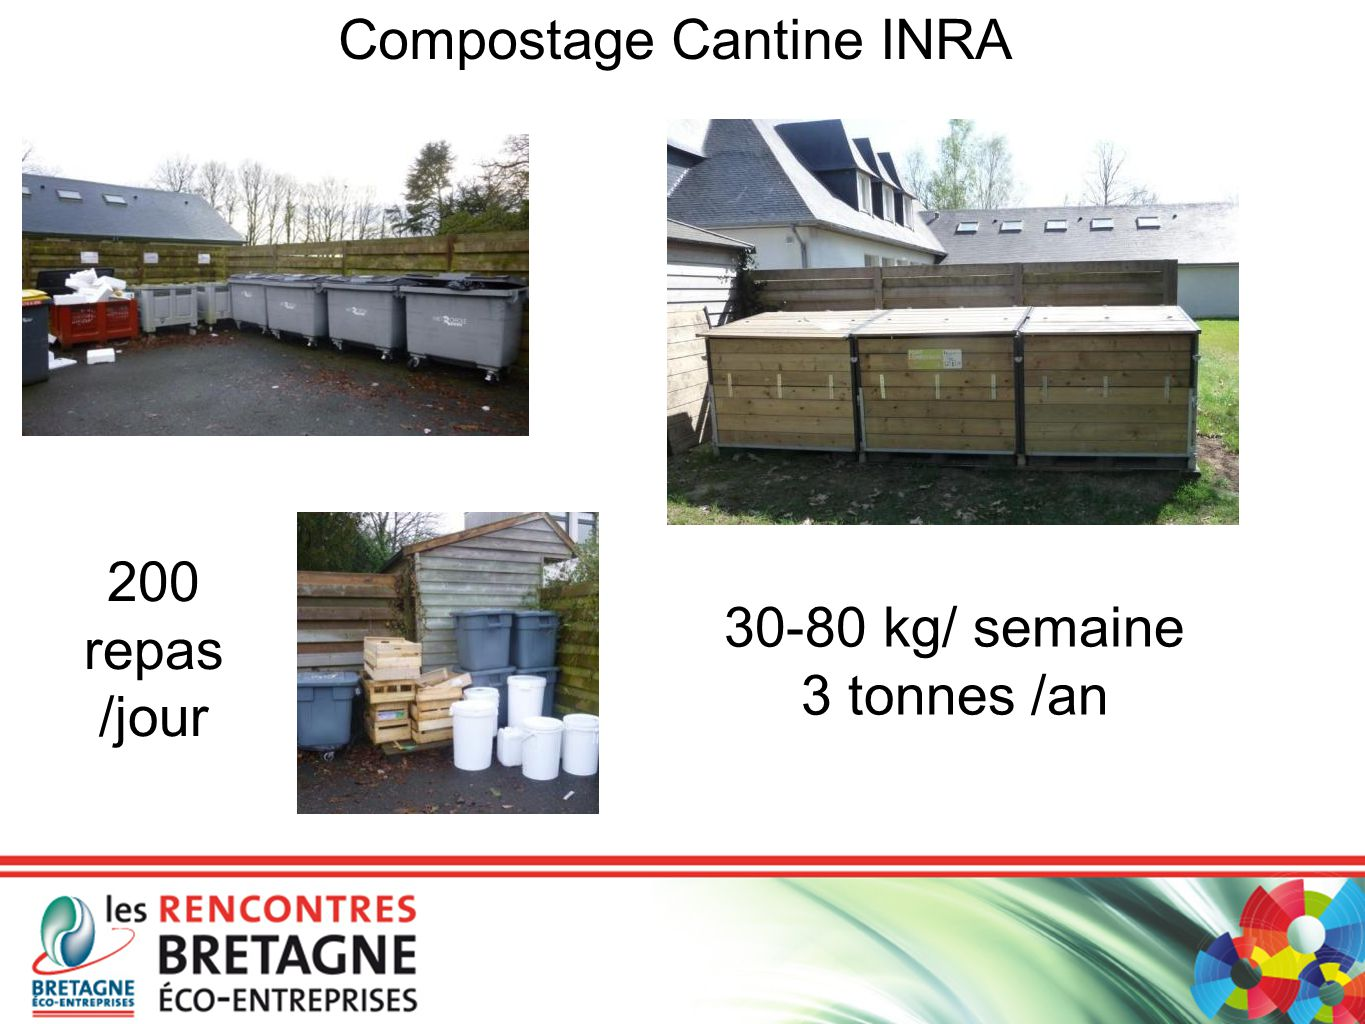 Compostage Cantine INRA